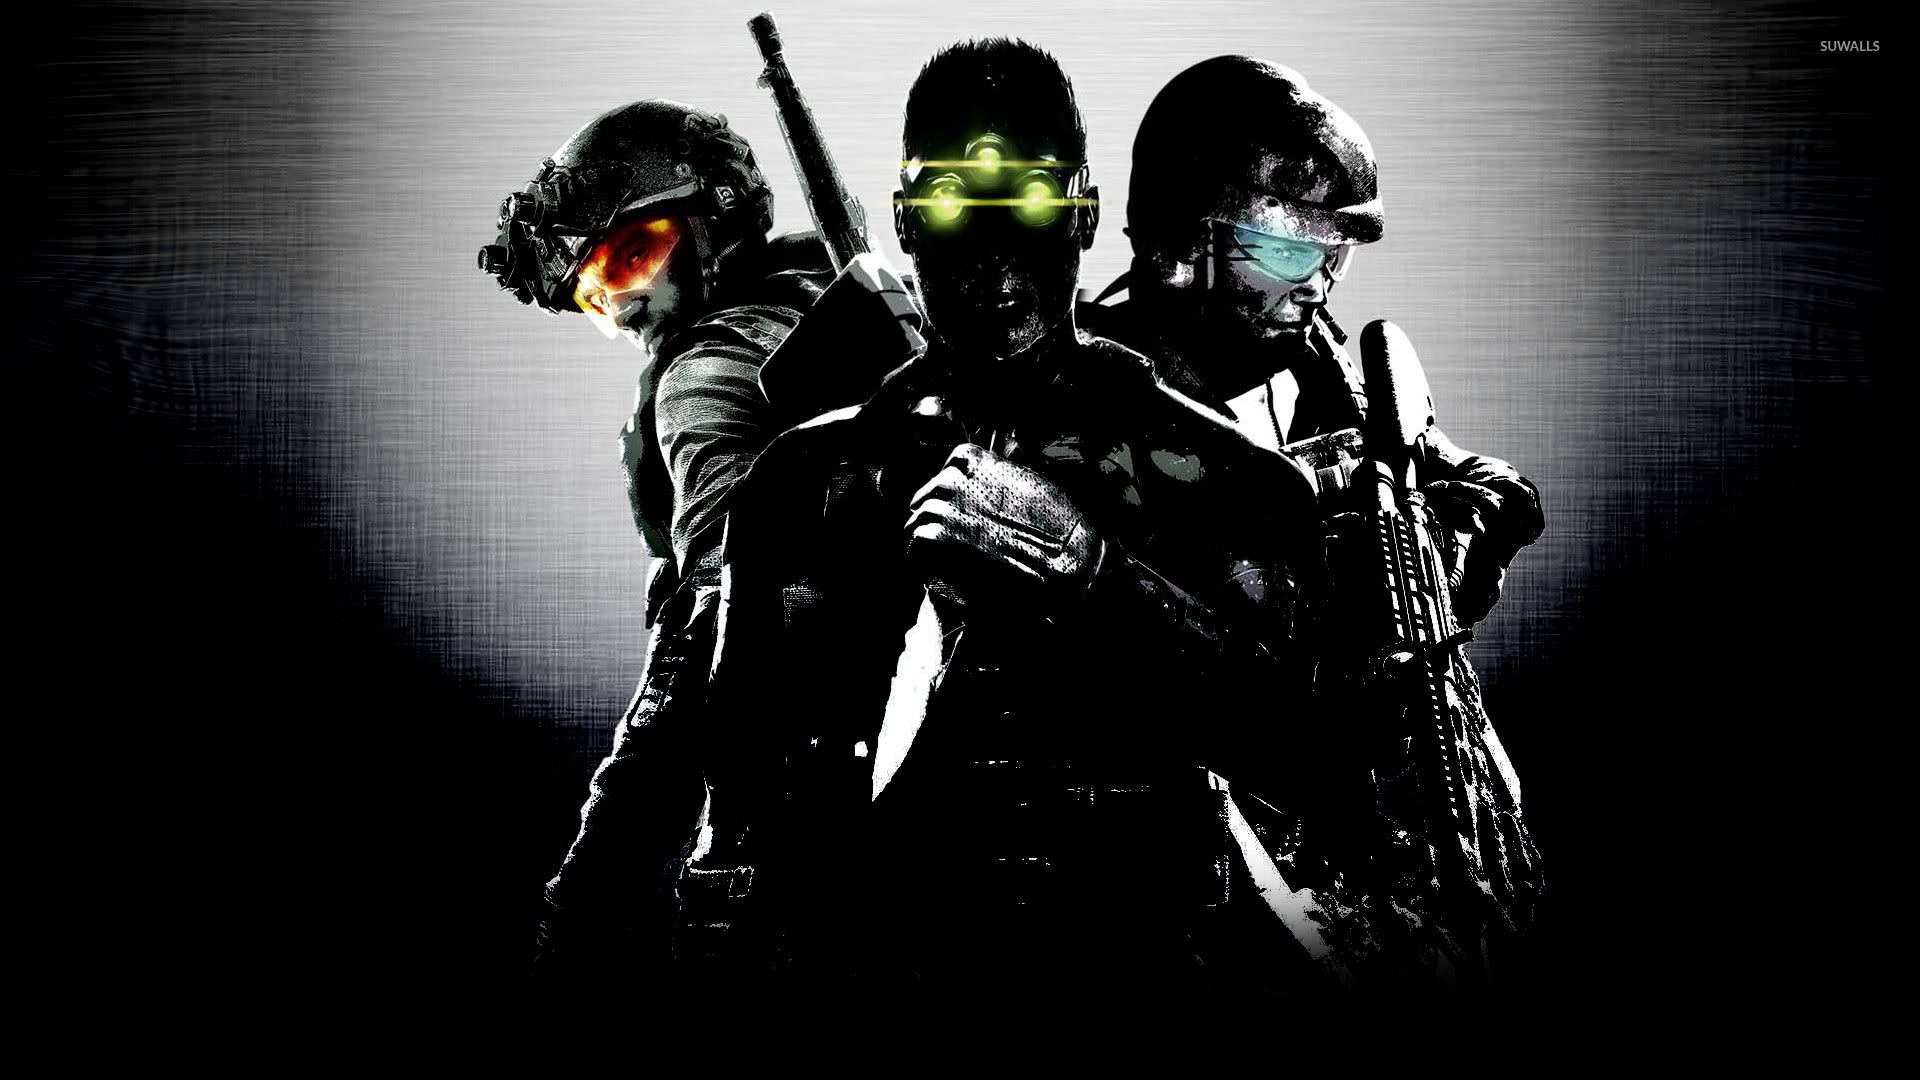 tom clancy's games wallpaper - game wallpapers - #17661